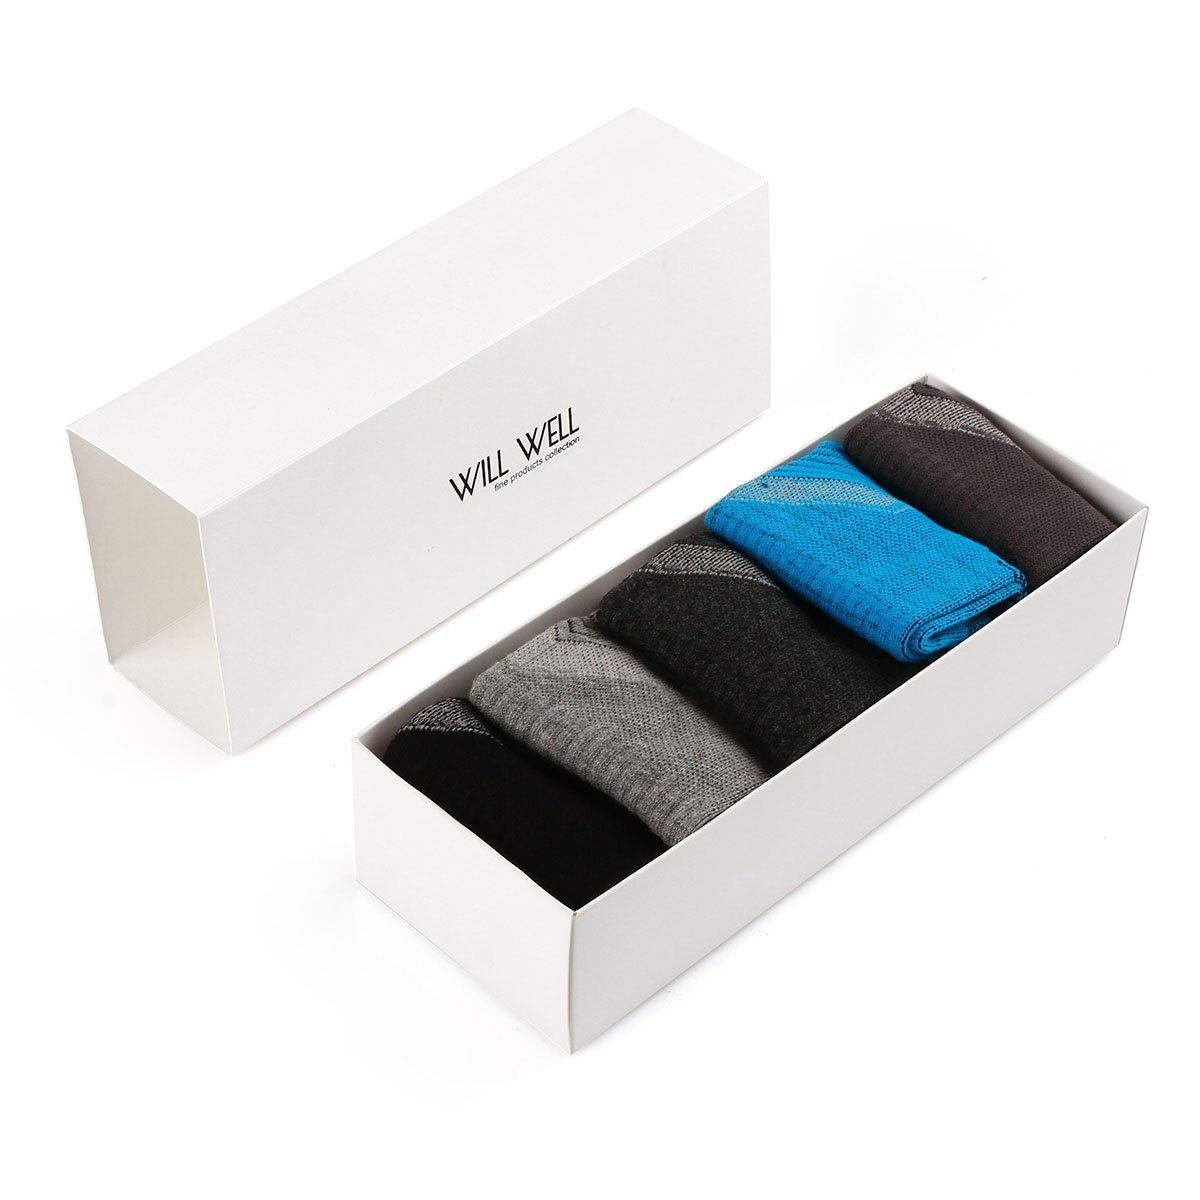 Will Well 5 Pack Mens Hiking Socks, Micro Crew Half Thickness Cushion Running Sports Performance Summer by Will Well (Image #7)